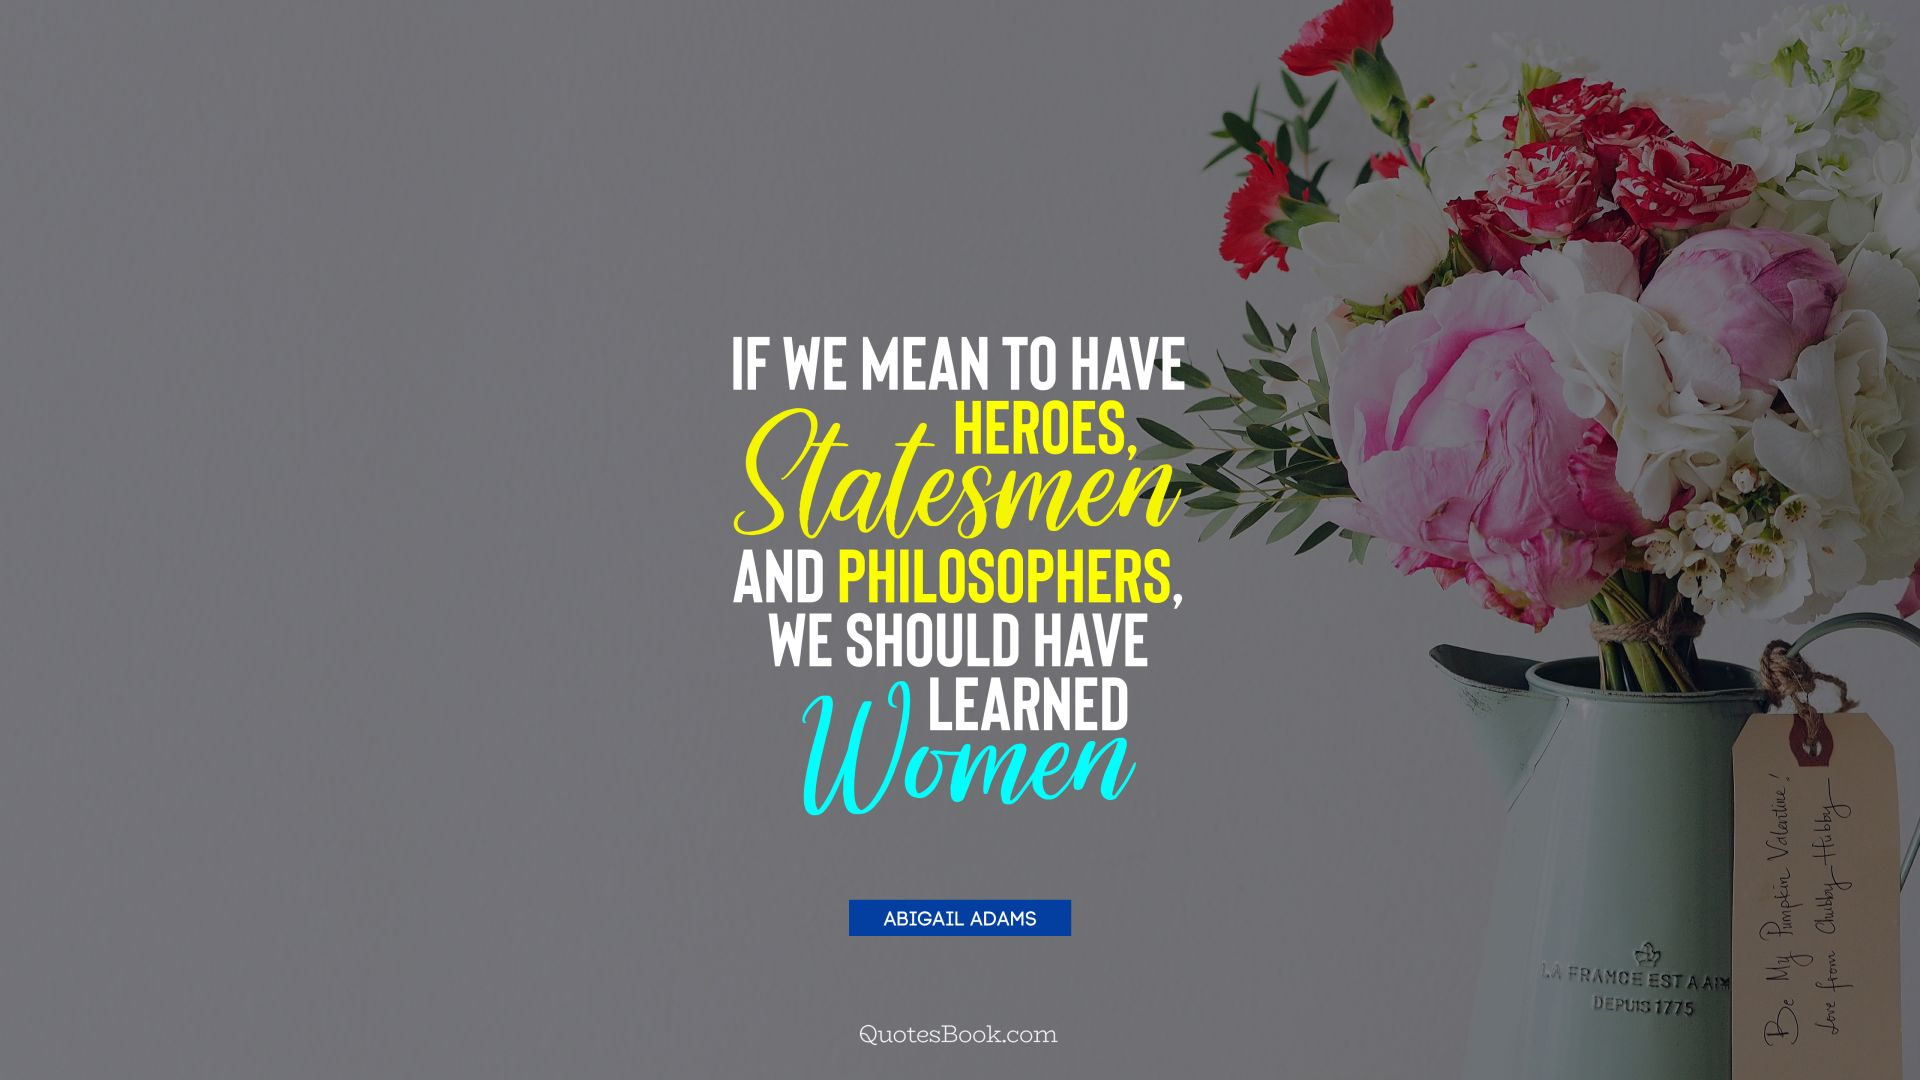 If we mean to have heroes, statesmen and philosophers, we should have learned women. - Quote by Abigail Adams